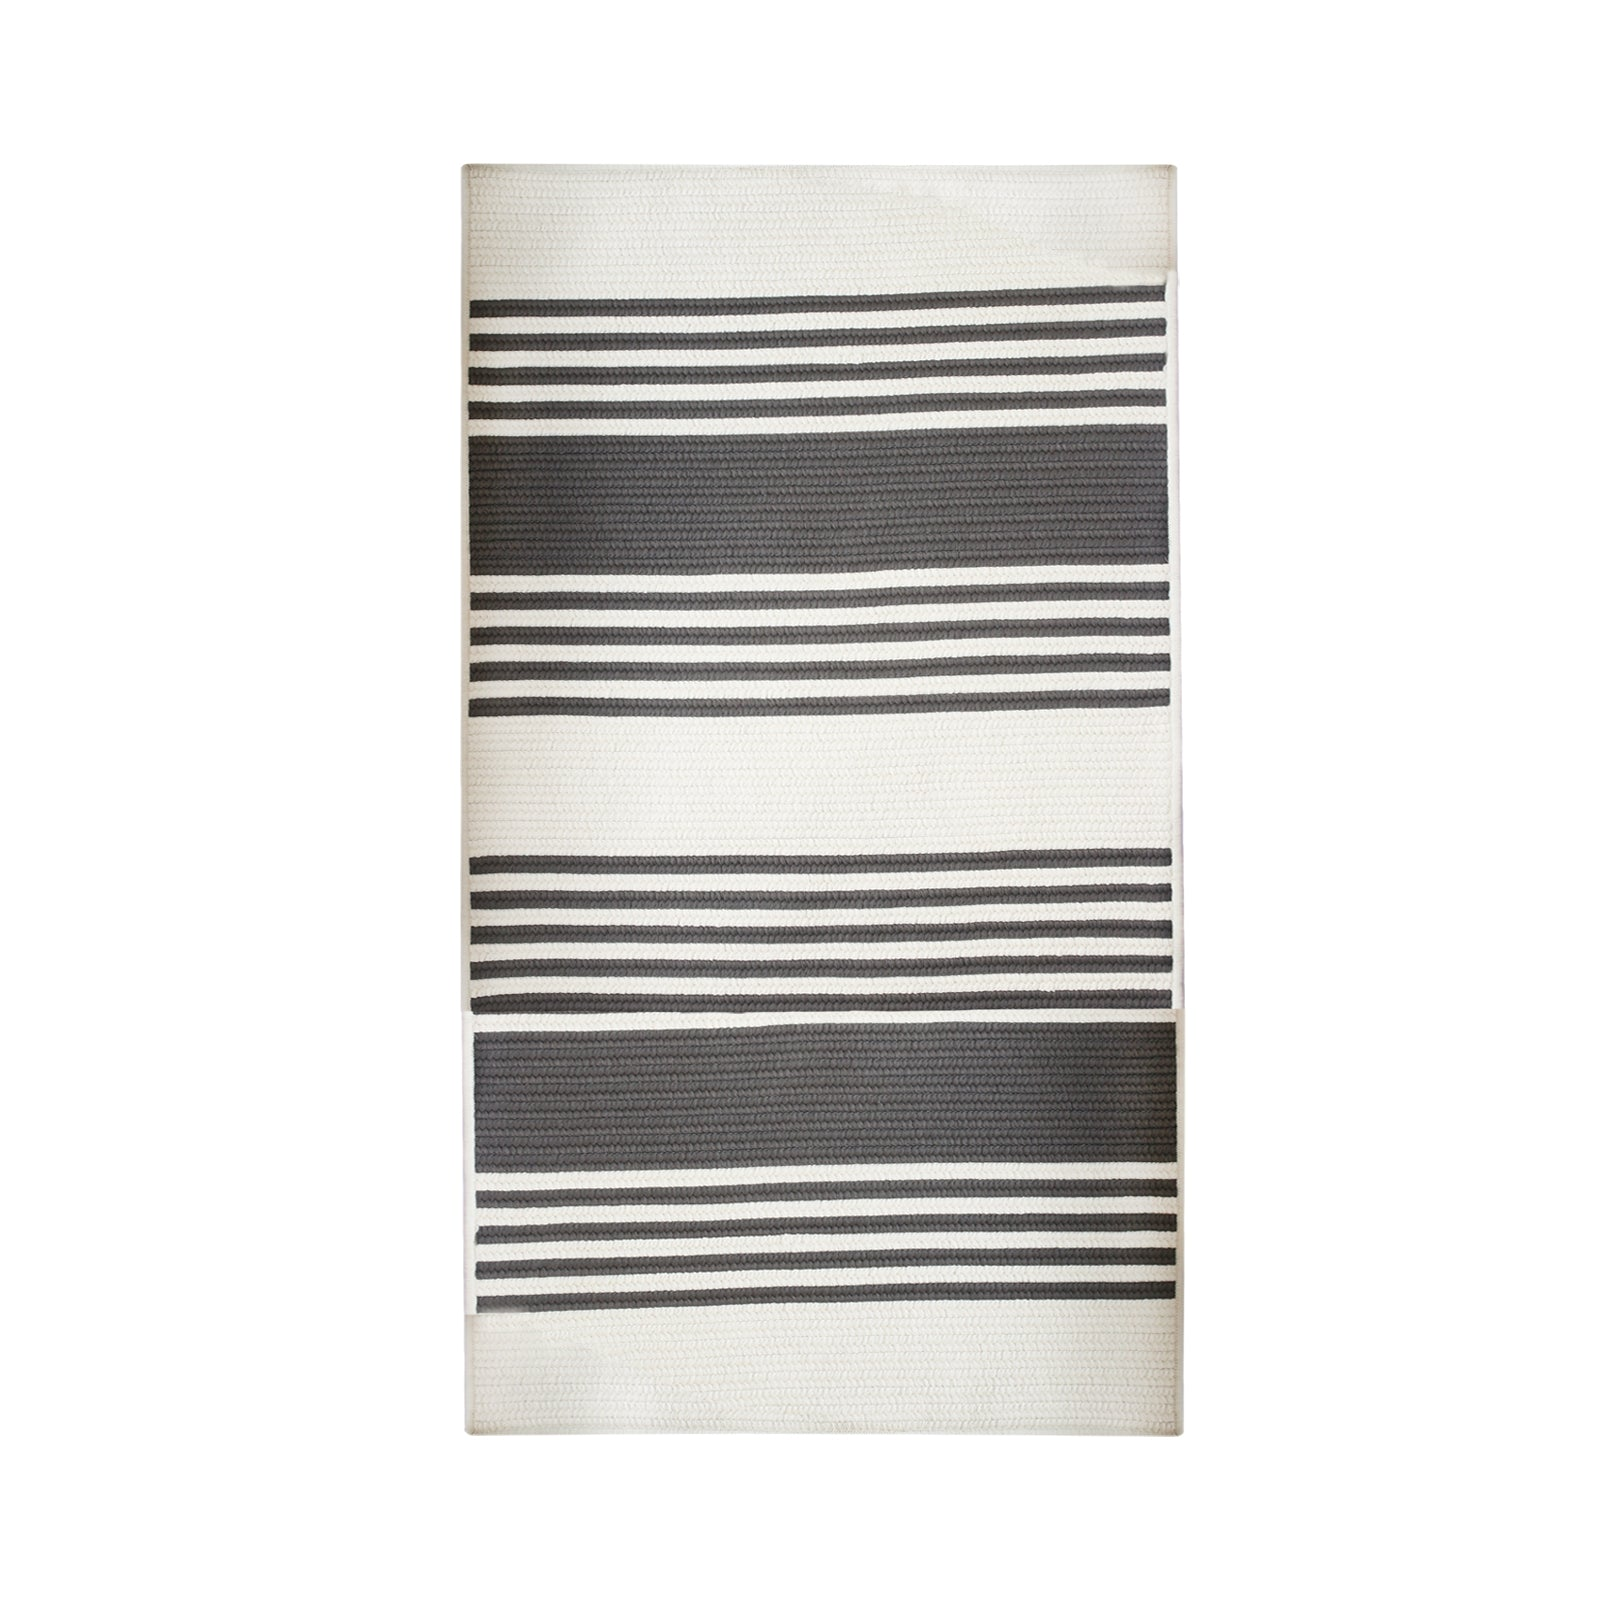 Sailor Rug in Charcoal